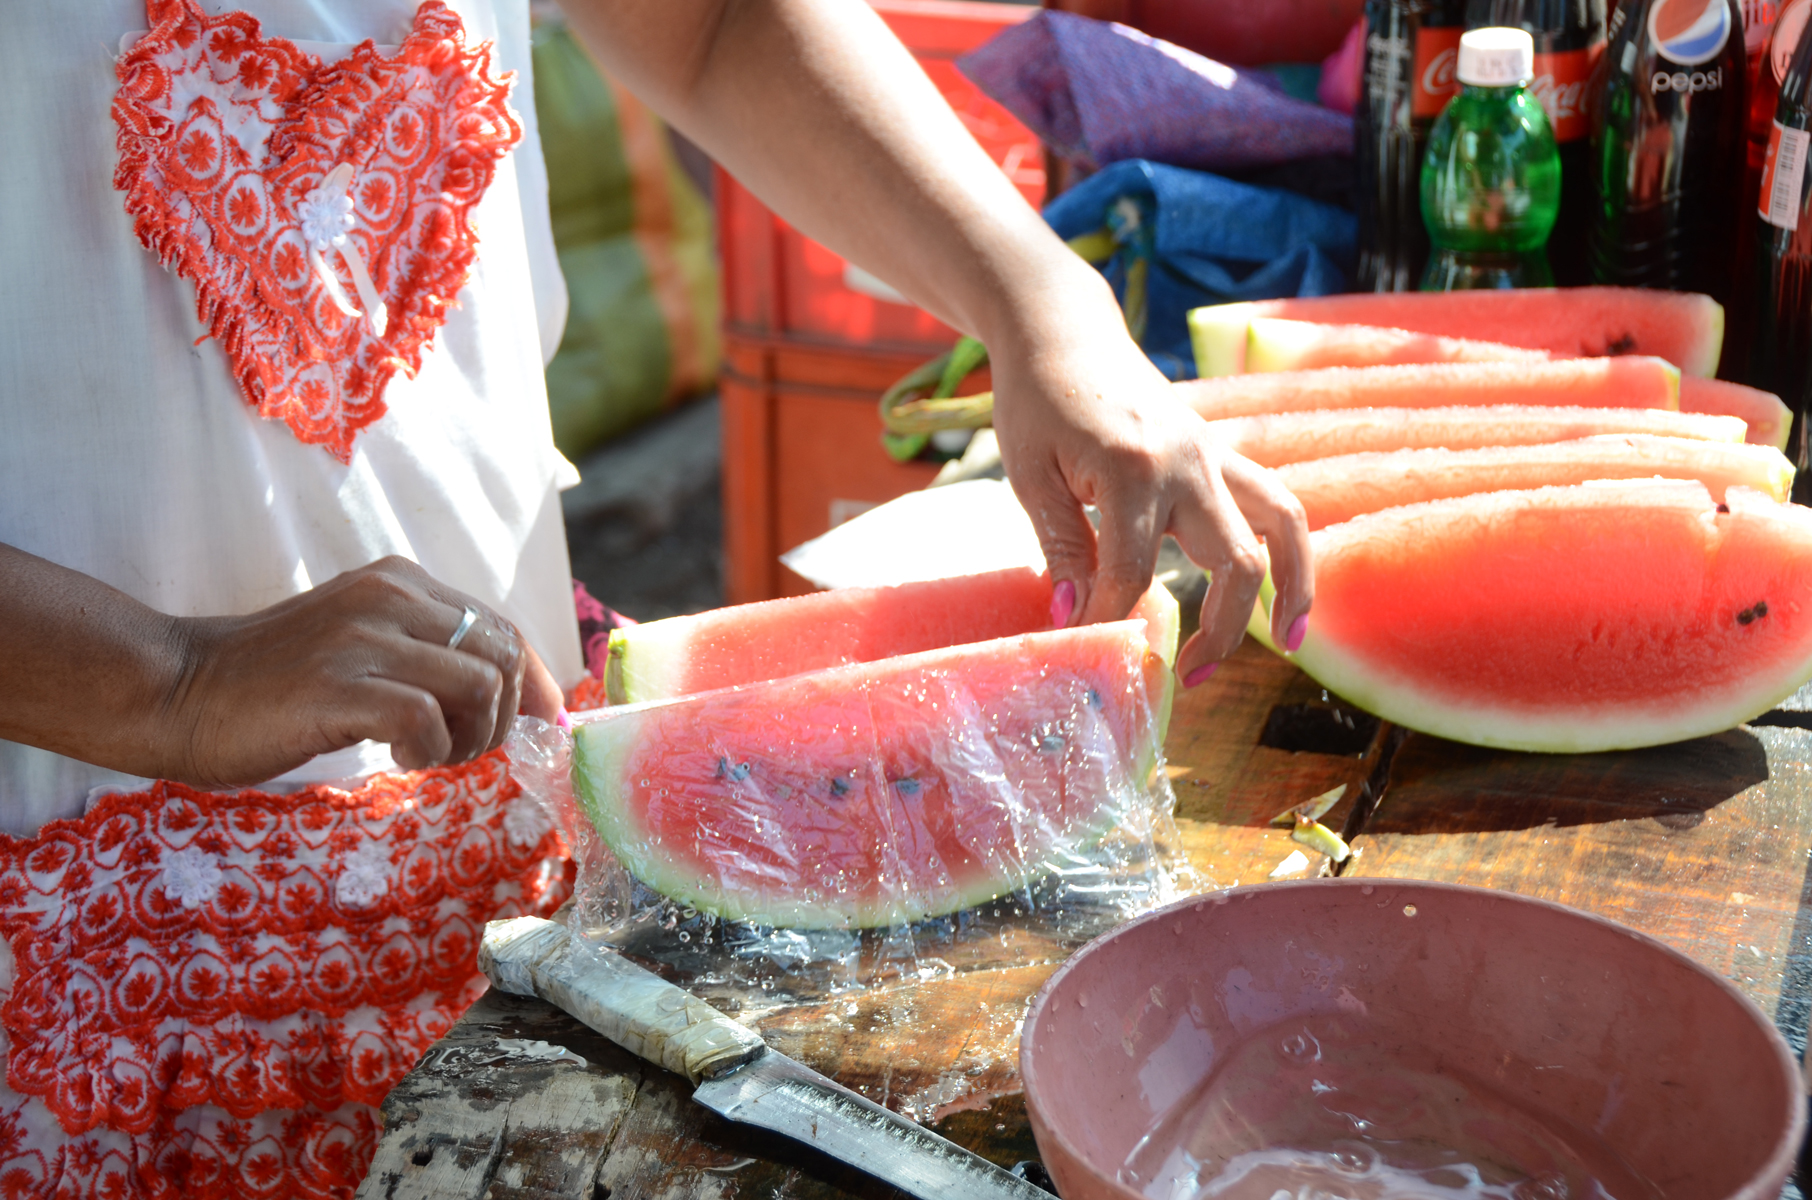 Dayani wrapping watermelon slices at her stand in the Mercado Oriental (2012). Photo by Elizabeth Kay.